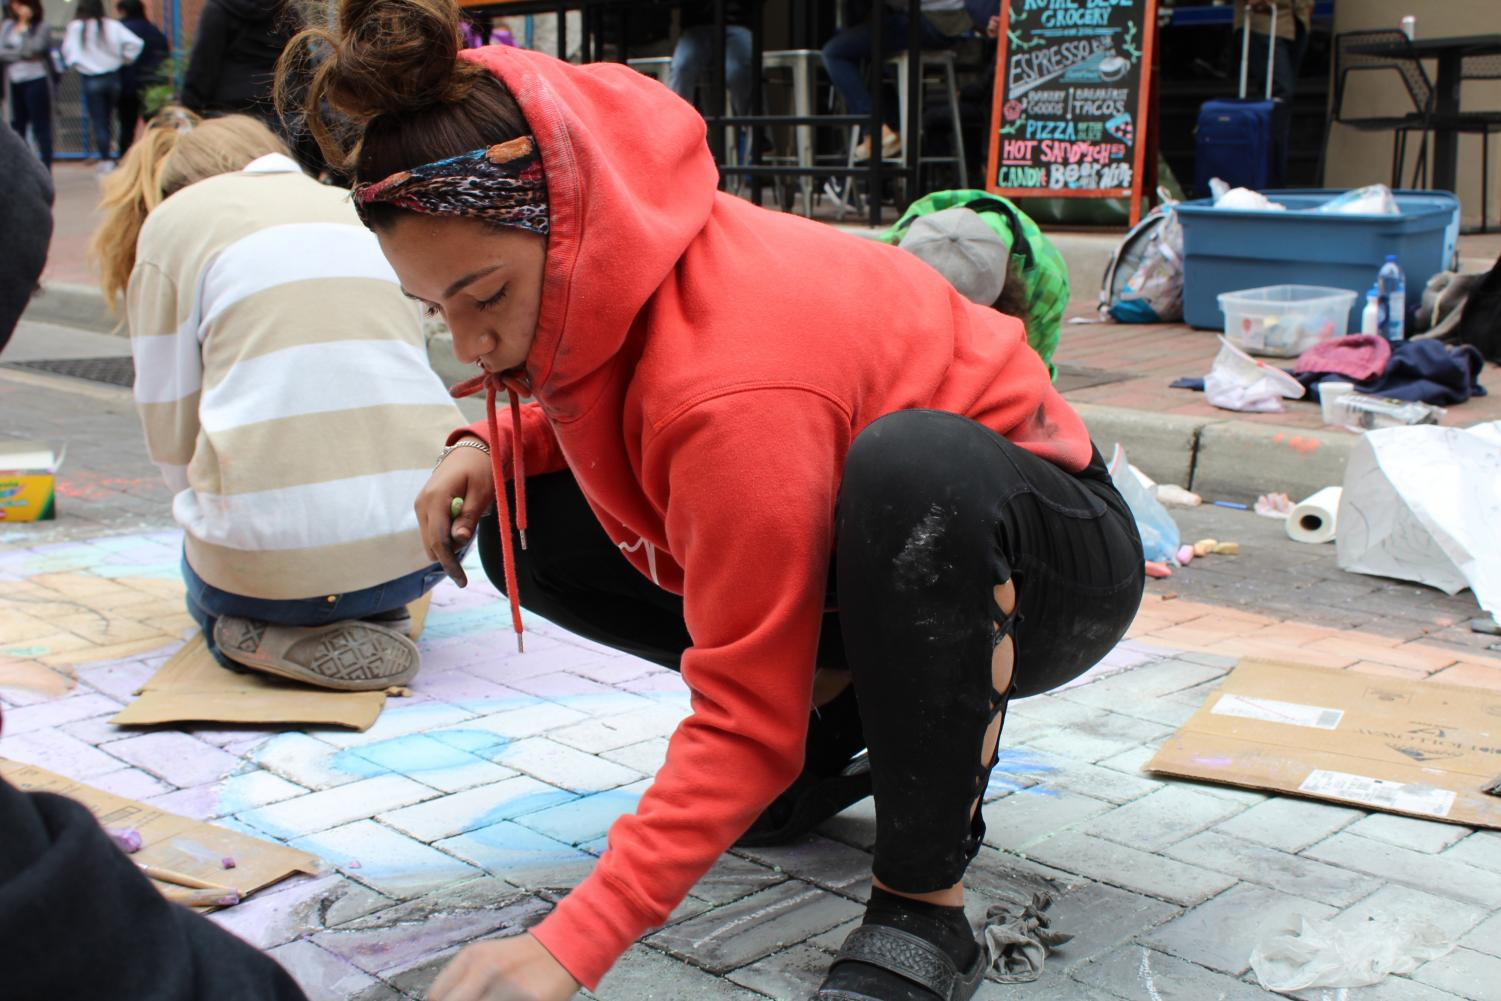 Senior Jacklyn Servin chalks up Houston Street in downtown San Antonio. This is the 5th year Art Club has participated in this event.